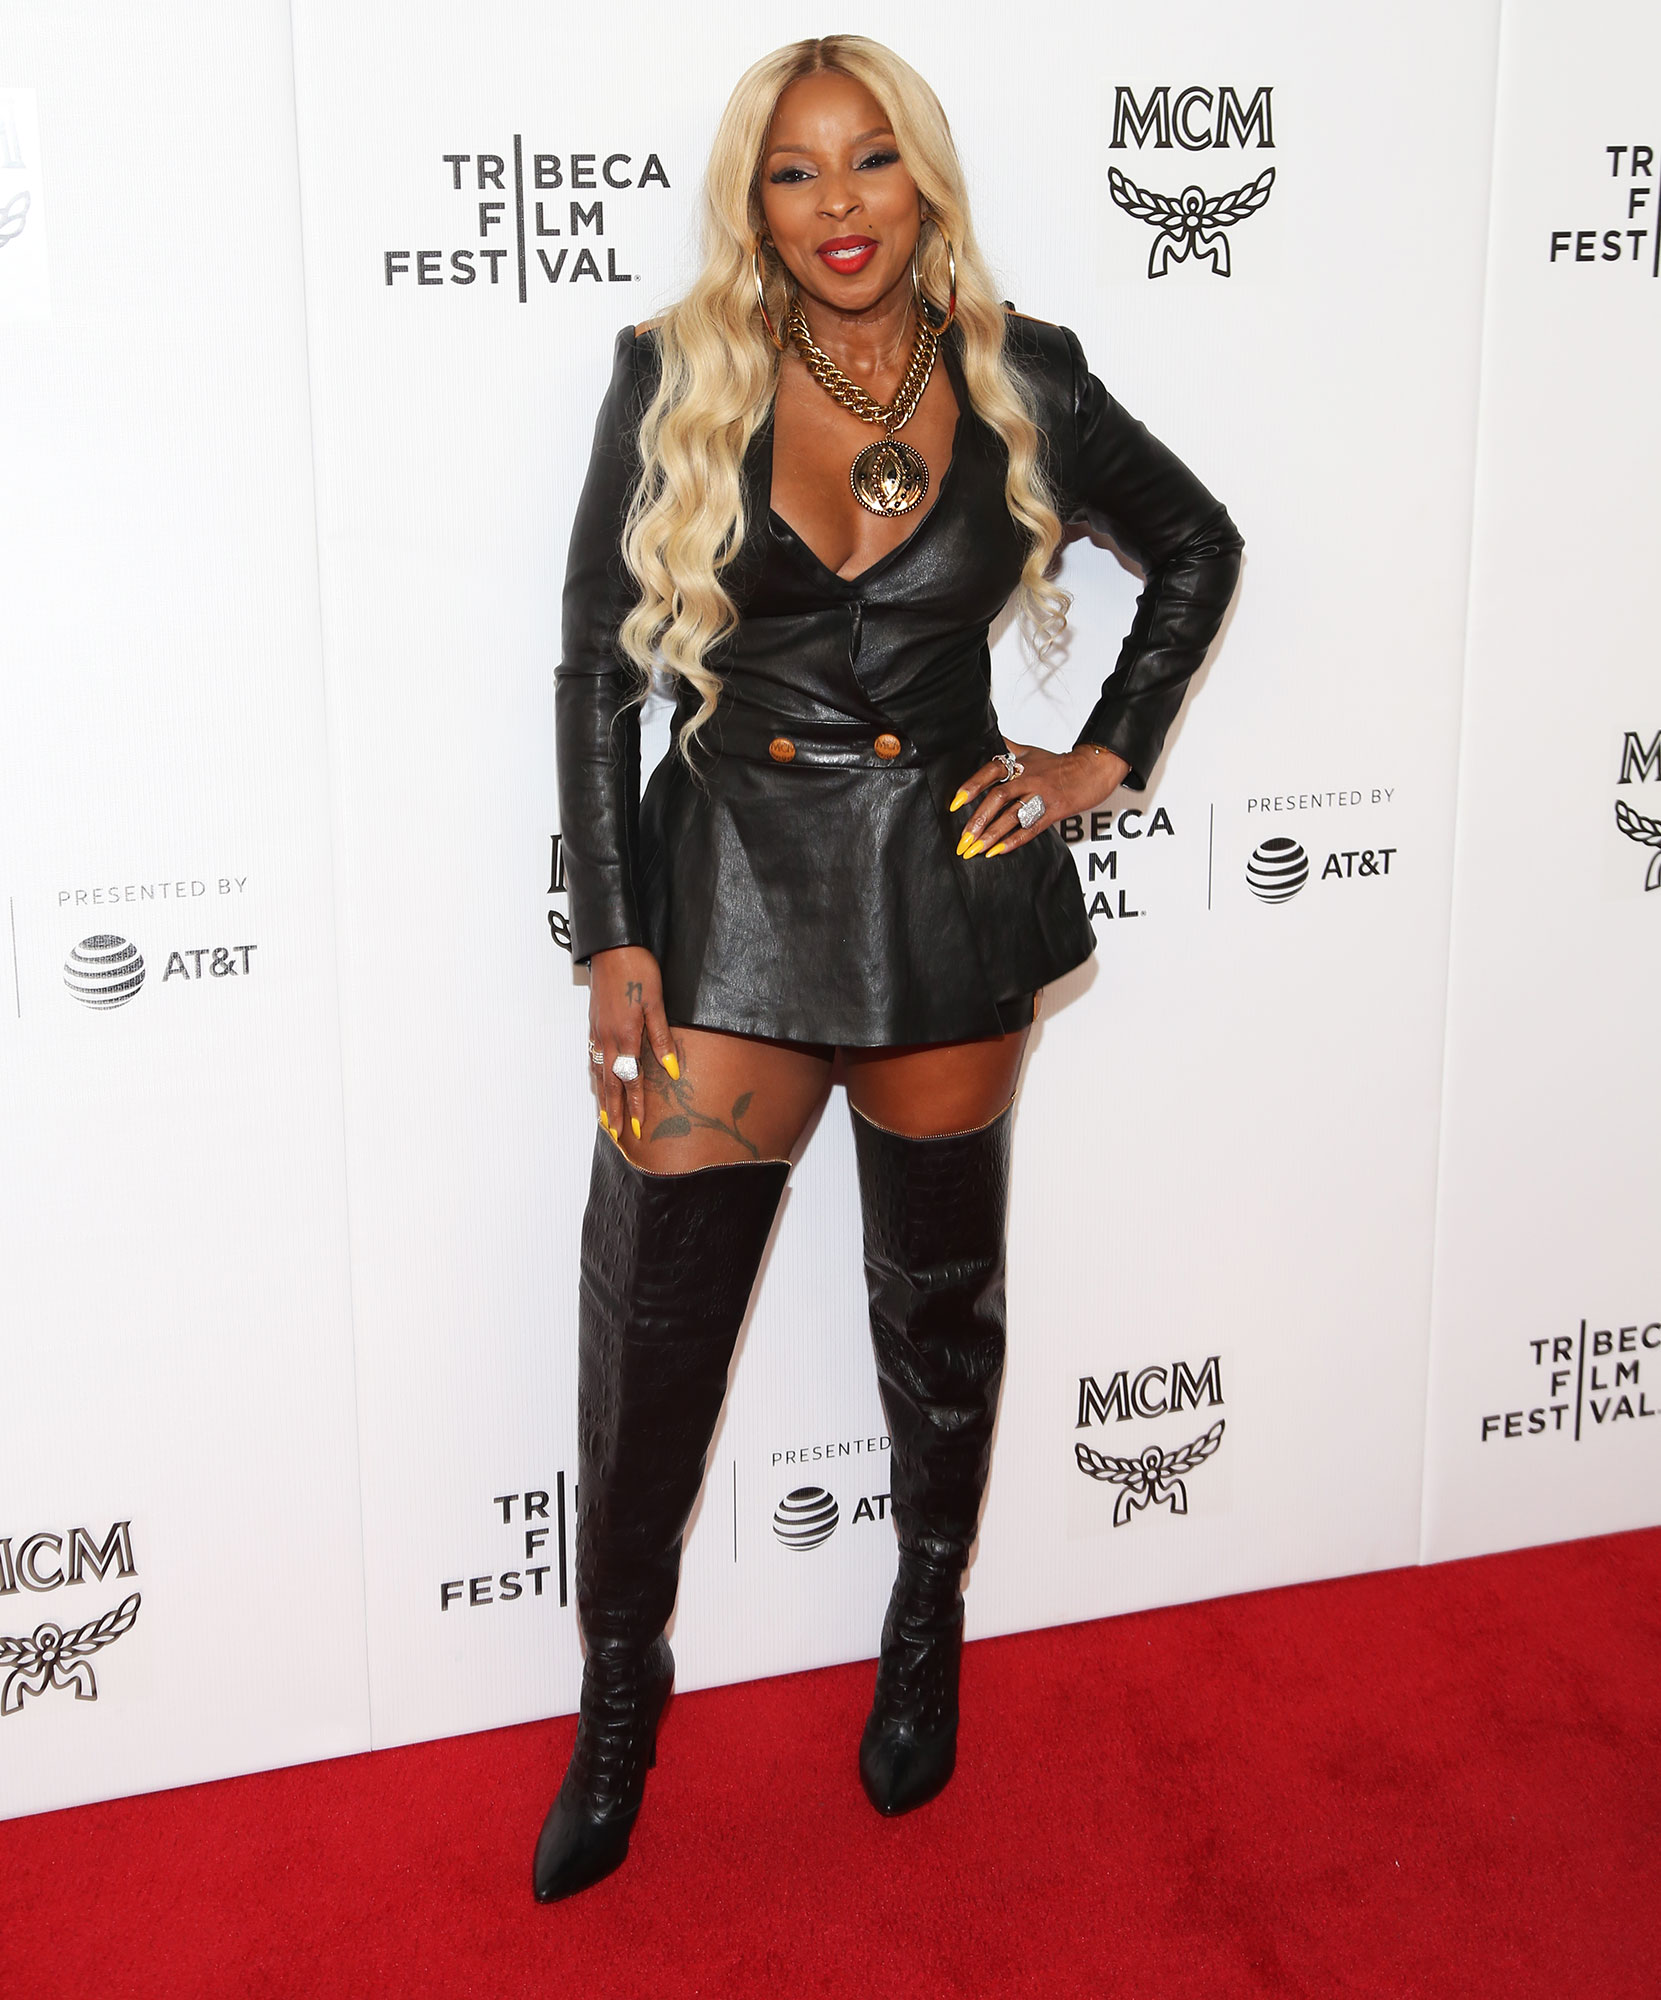 Mary J. Blige Stars up Their Style Game at Tribeca Film Festival - The music legend looked super sexy in a leather minidress with thigh-high boots and a chunky necklace at the screening of The Remix: Hip Hop X Fashion on May 2.